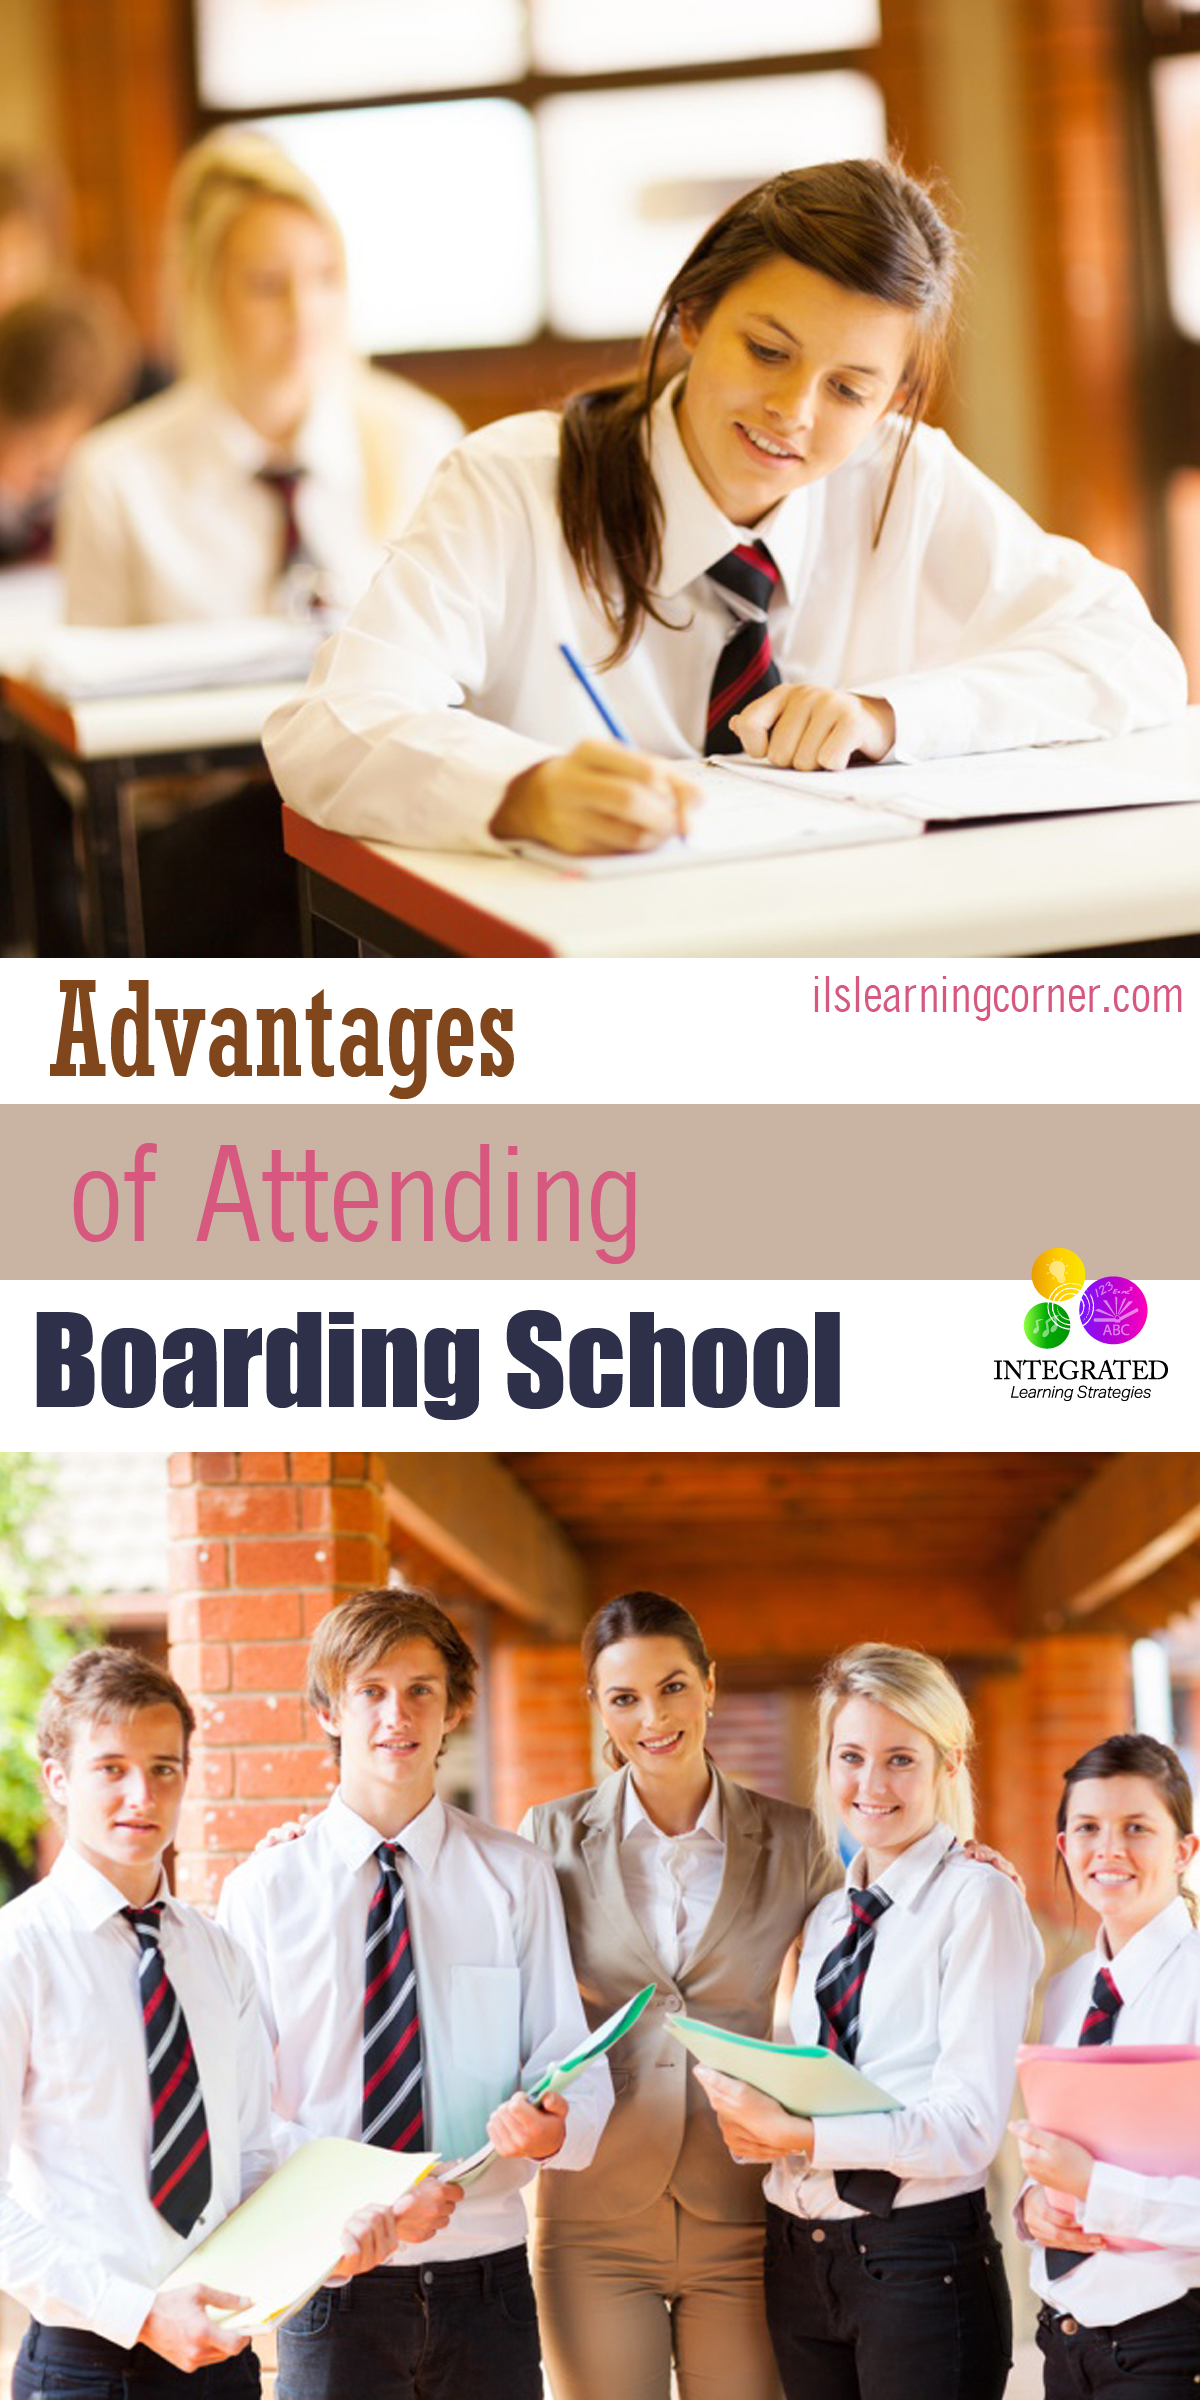 Advantages of Boarding School